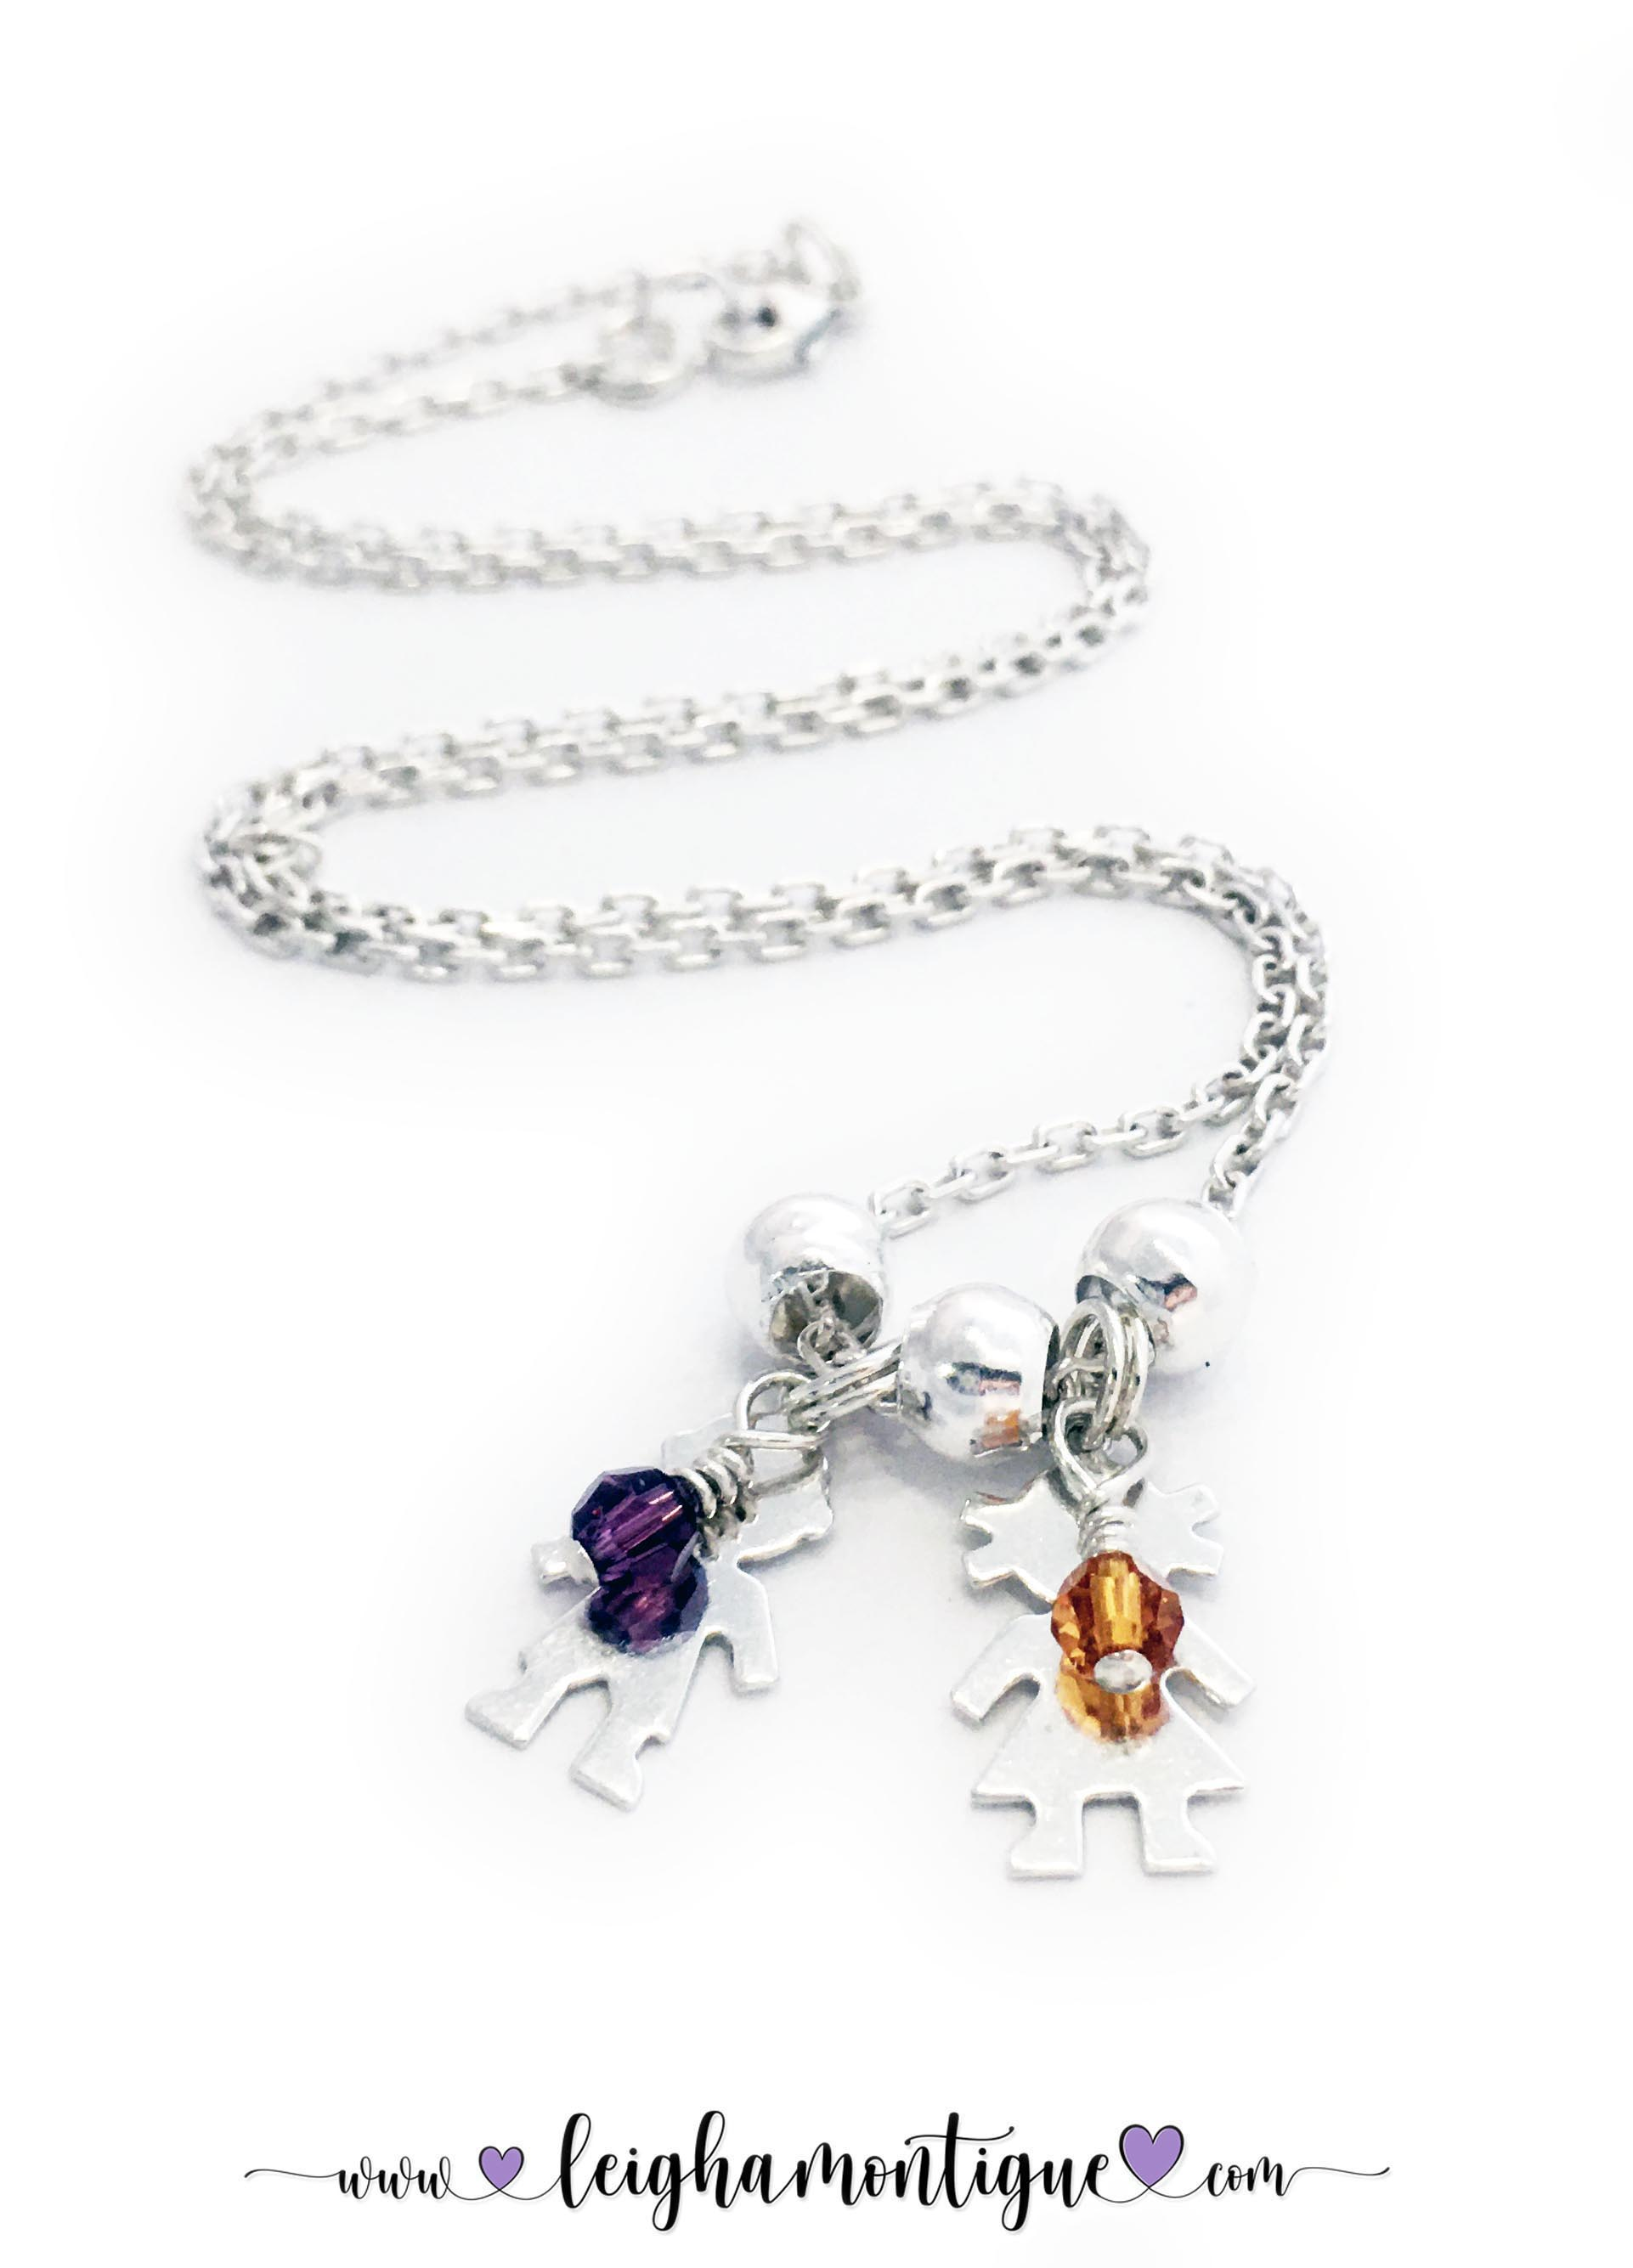 Mom with a Boy and Girl Charm Necklace with Birthstones - DBL-BN-N6  Two kid charms on a Rolo Chain necklace.